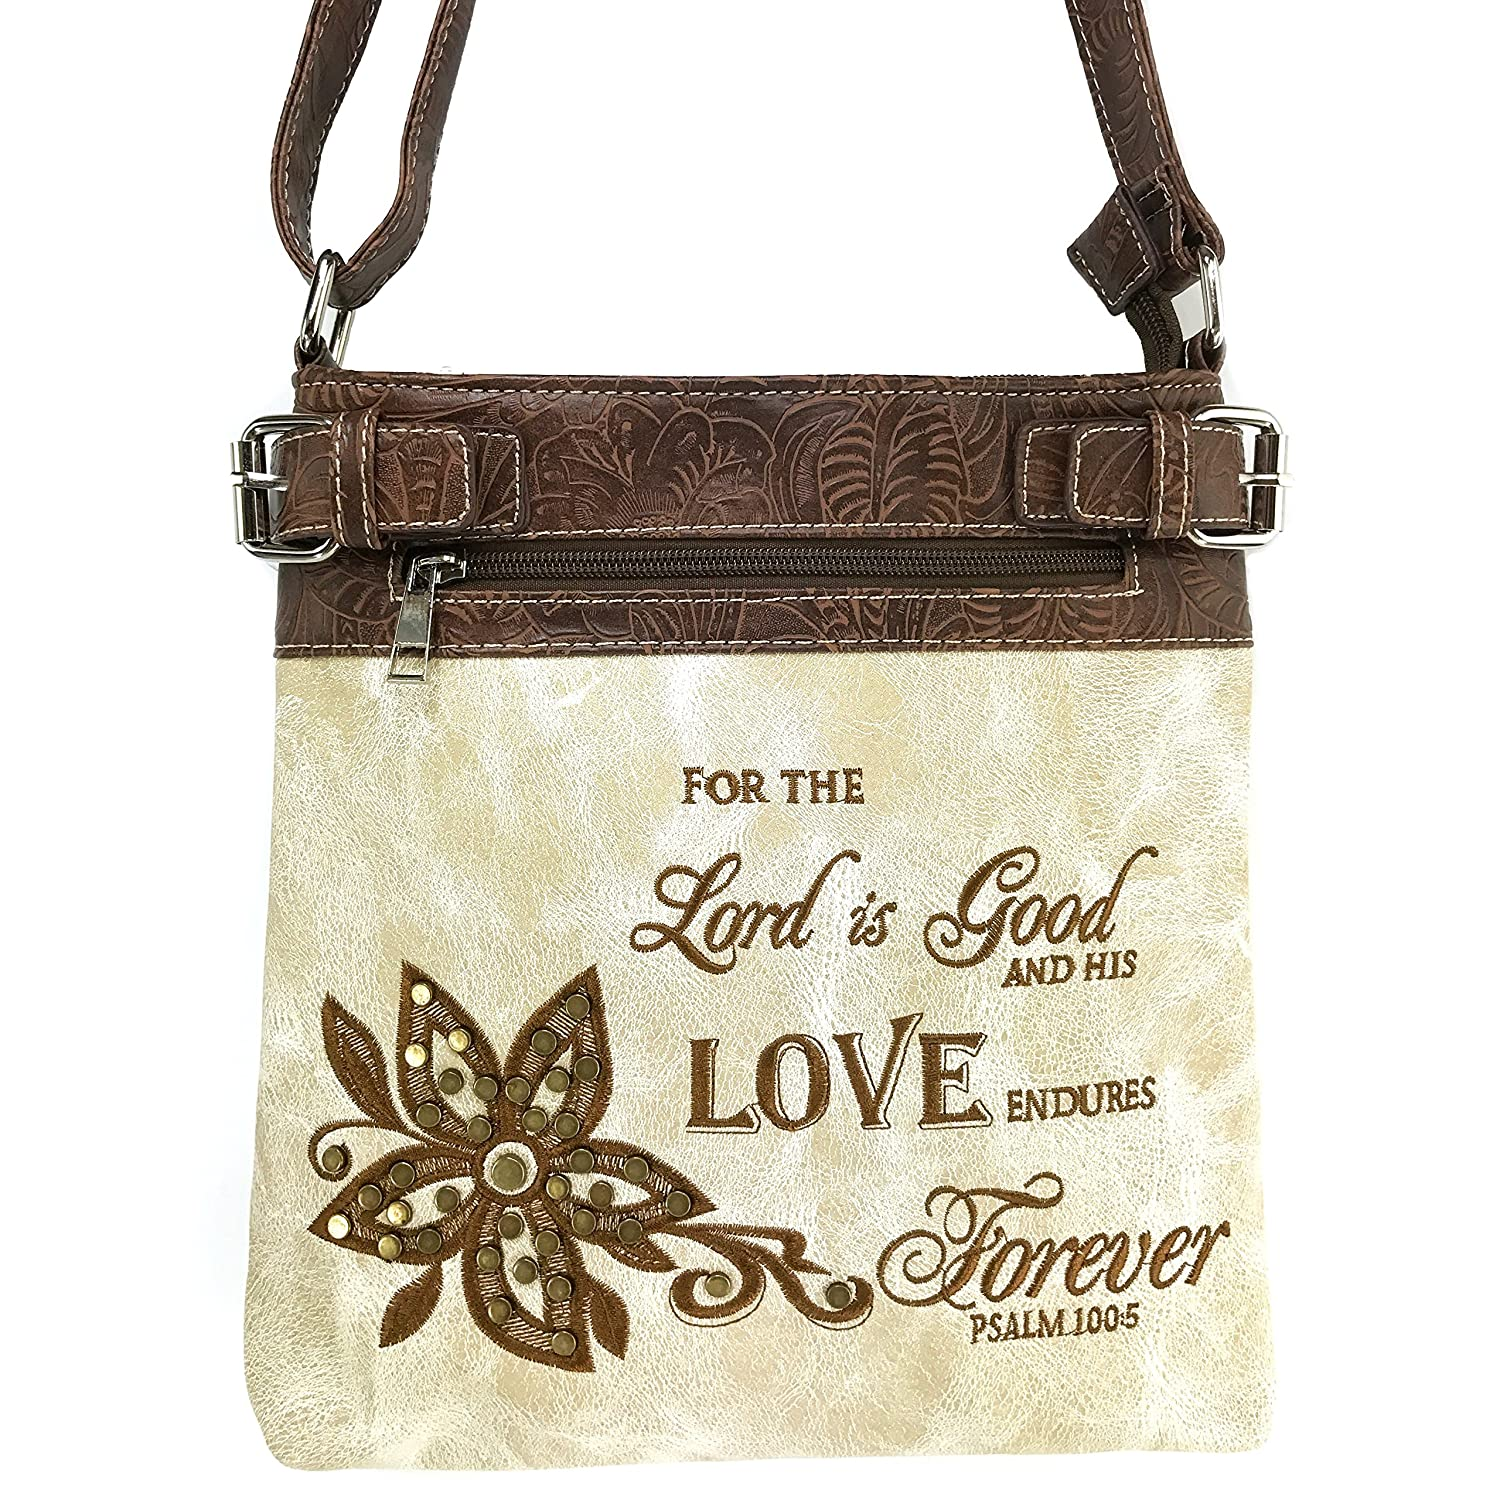 Justin West Cross Angel Wings Concealed Carryハンドバッグ財布クロスボディメッセンジャーバッグと財布  Beige Messenger Bag B01I7DGXJI